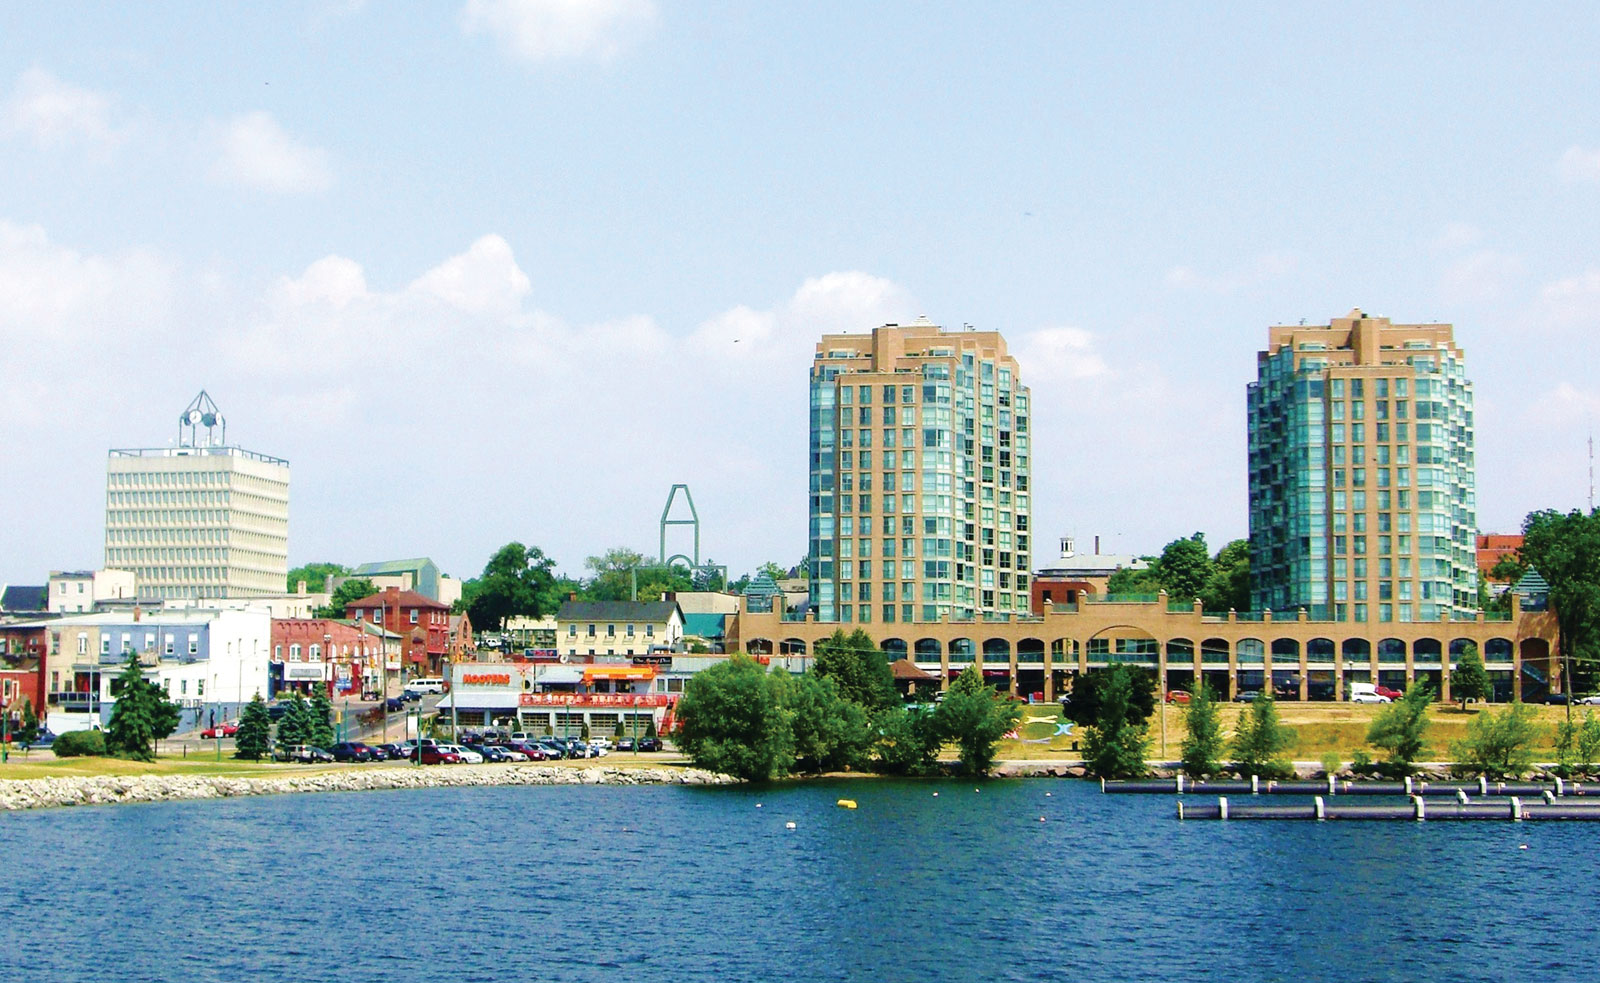 5 things to do in Barrie